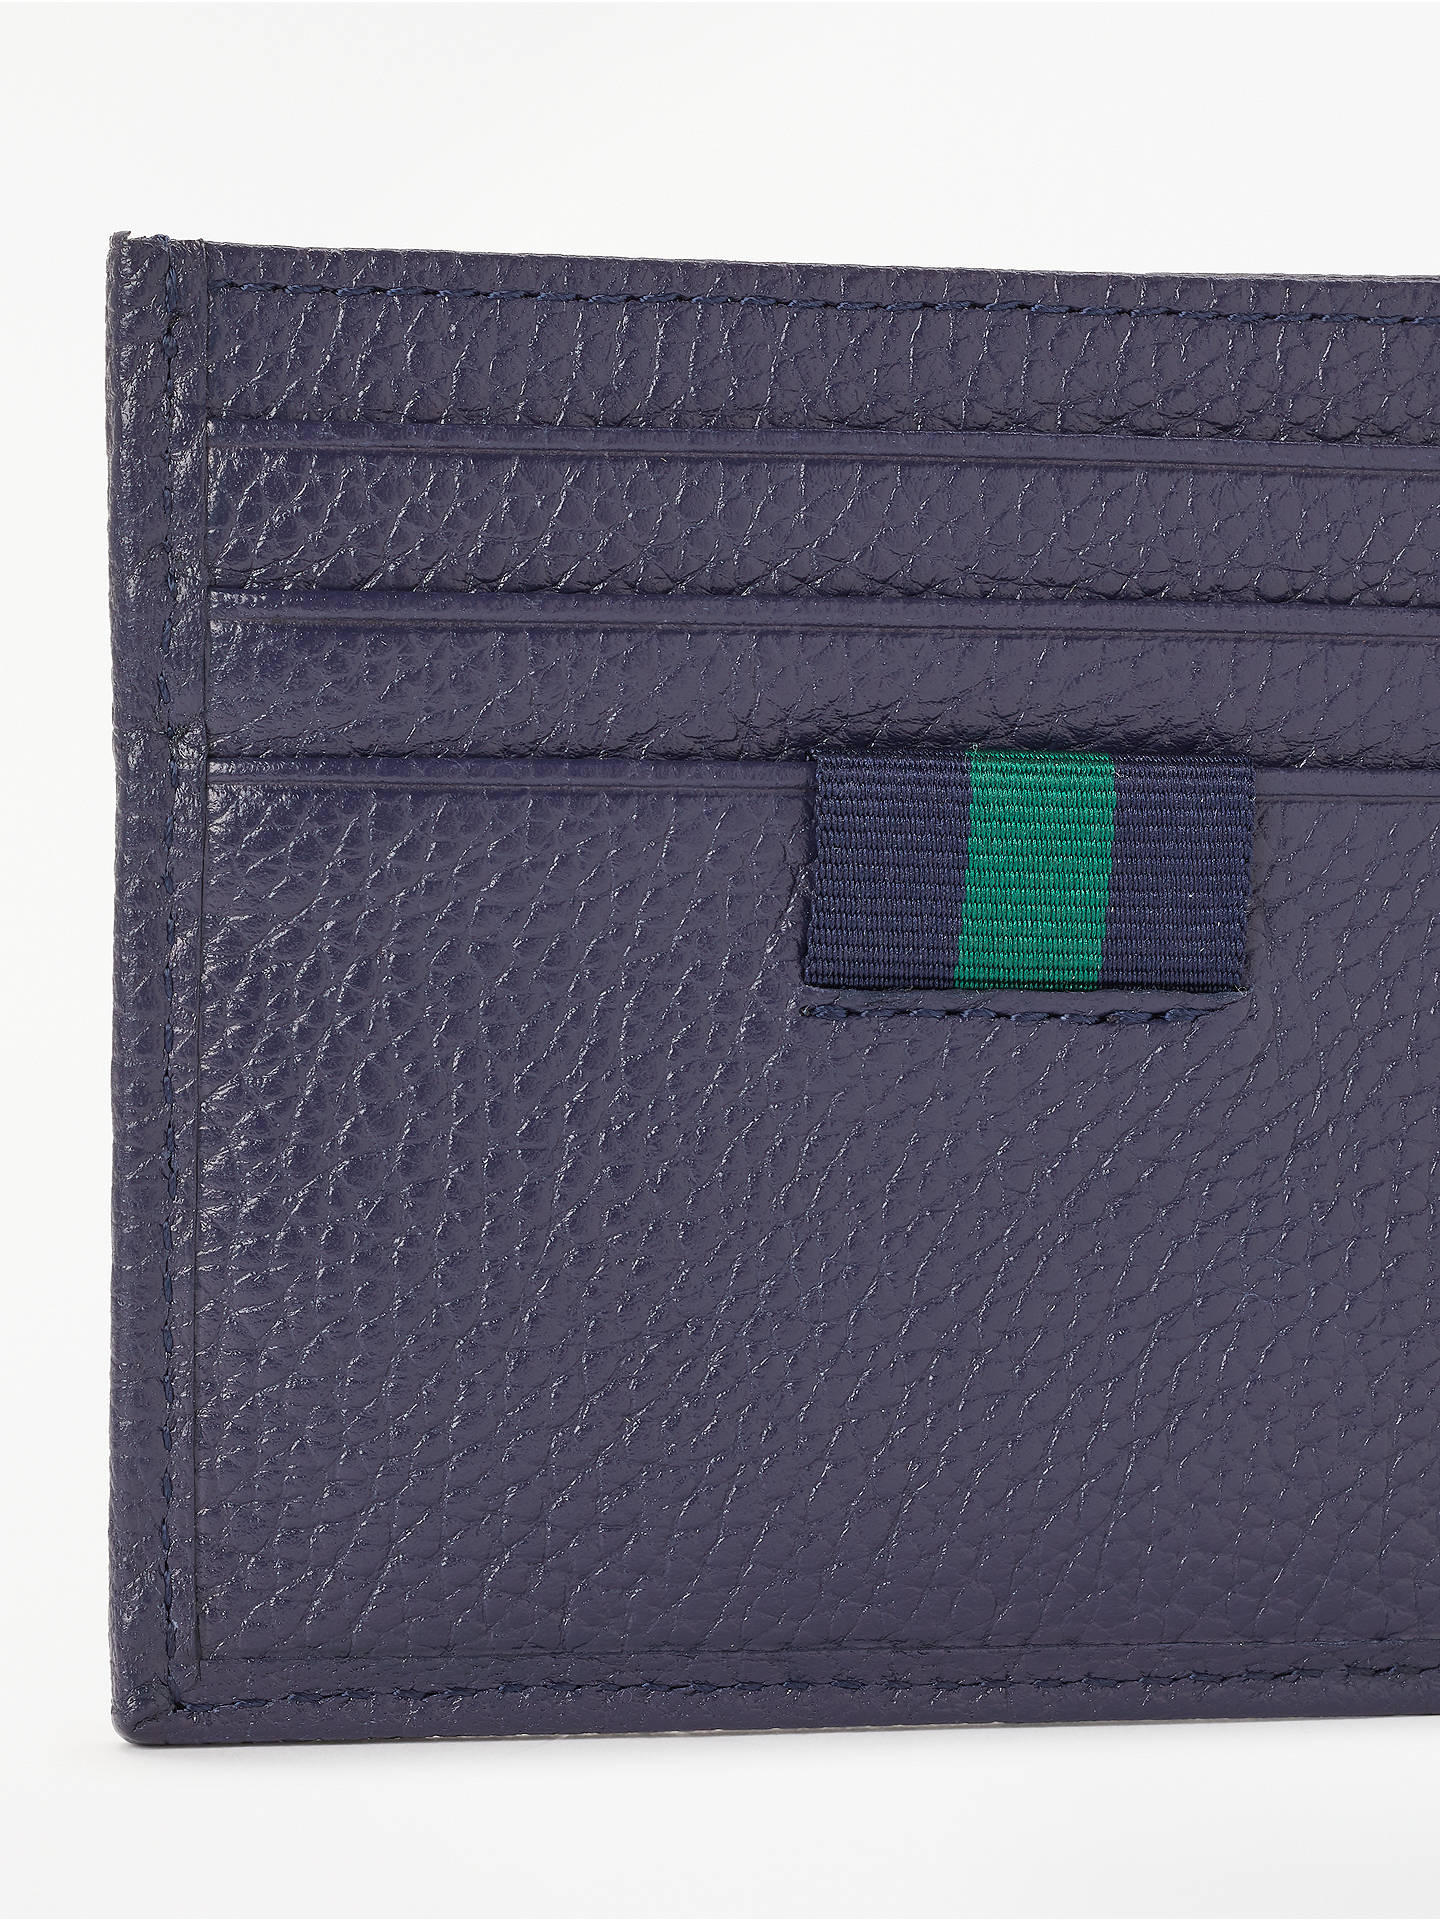 BuyPolo Ralph Lauren Pebble Leather Card Holder, Navy Online at johnlewis.com